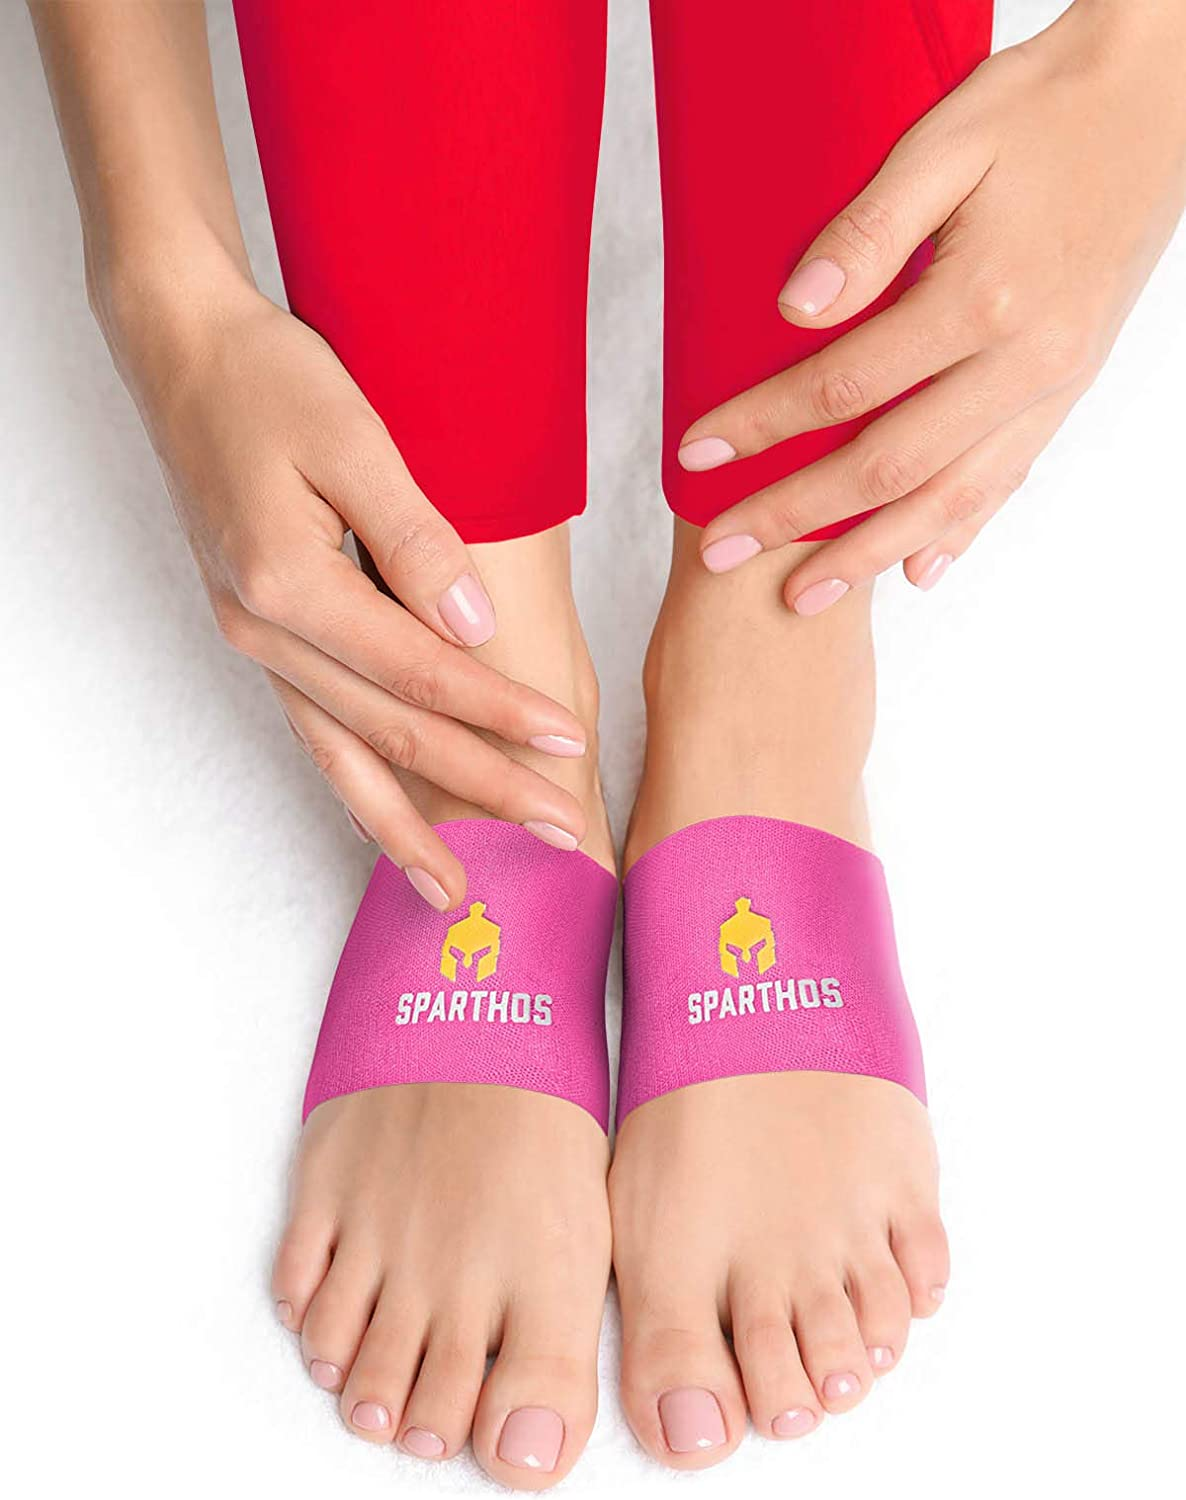 Sparthos Arch Compression Brace - Plantar Fasciitis Support Brace - Foot Feet Brace, Ankle Pain Relief, Night Splint - Shoe Boot Sandals Insert Inserts Insoles - Mens and Womens (Pink-L)